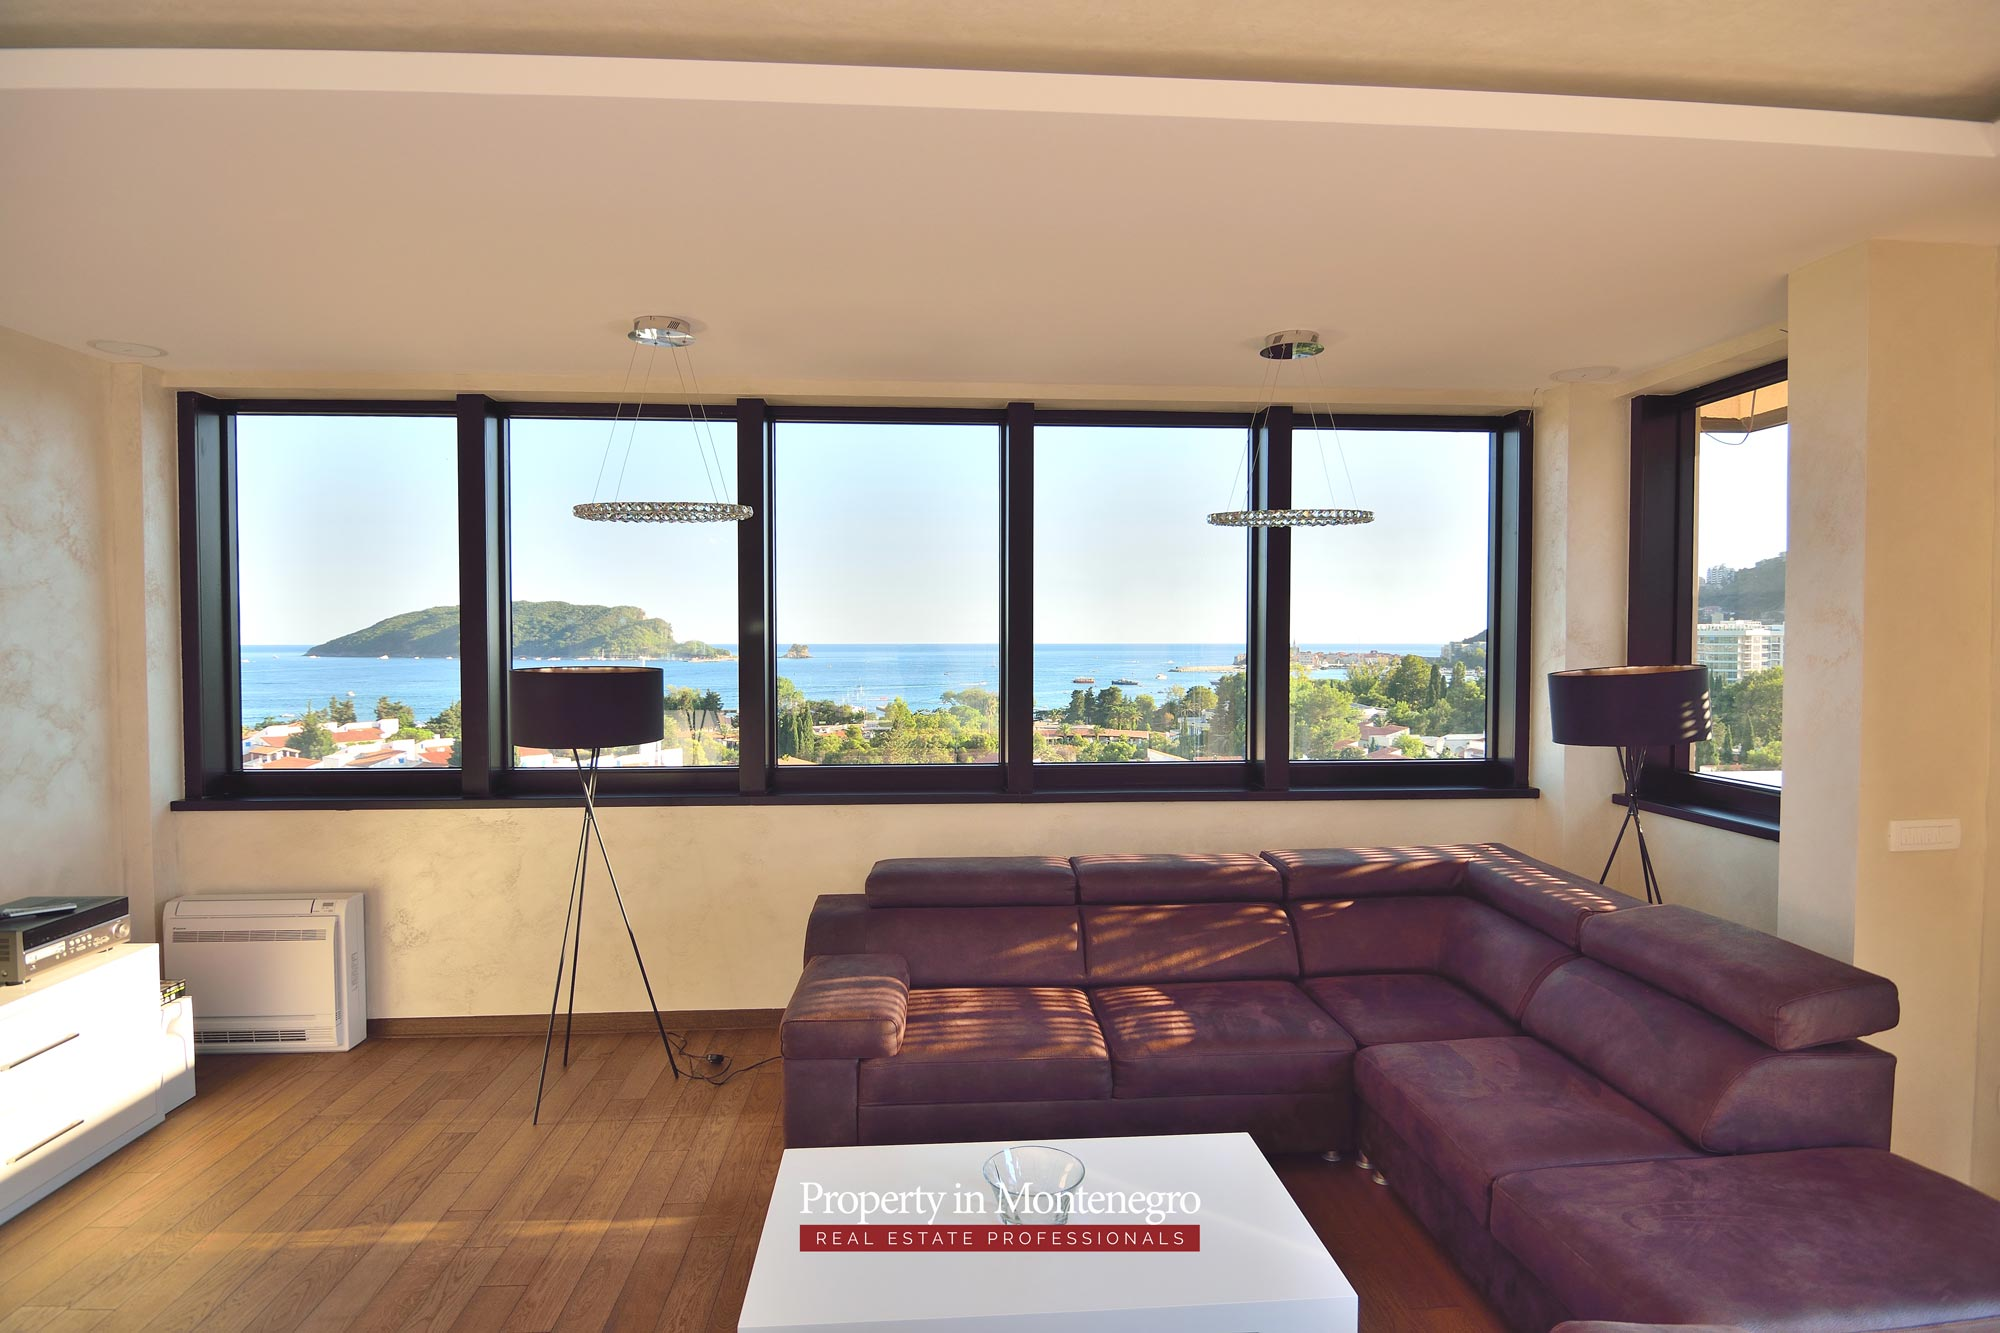 luxury-penthouse-with-panoramic-view-and-swimming-pool-for-sale-in-Budva-Montenegro (34).jpg